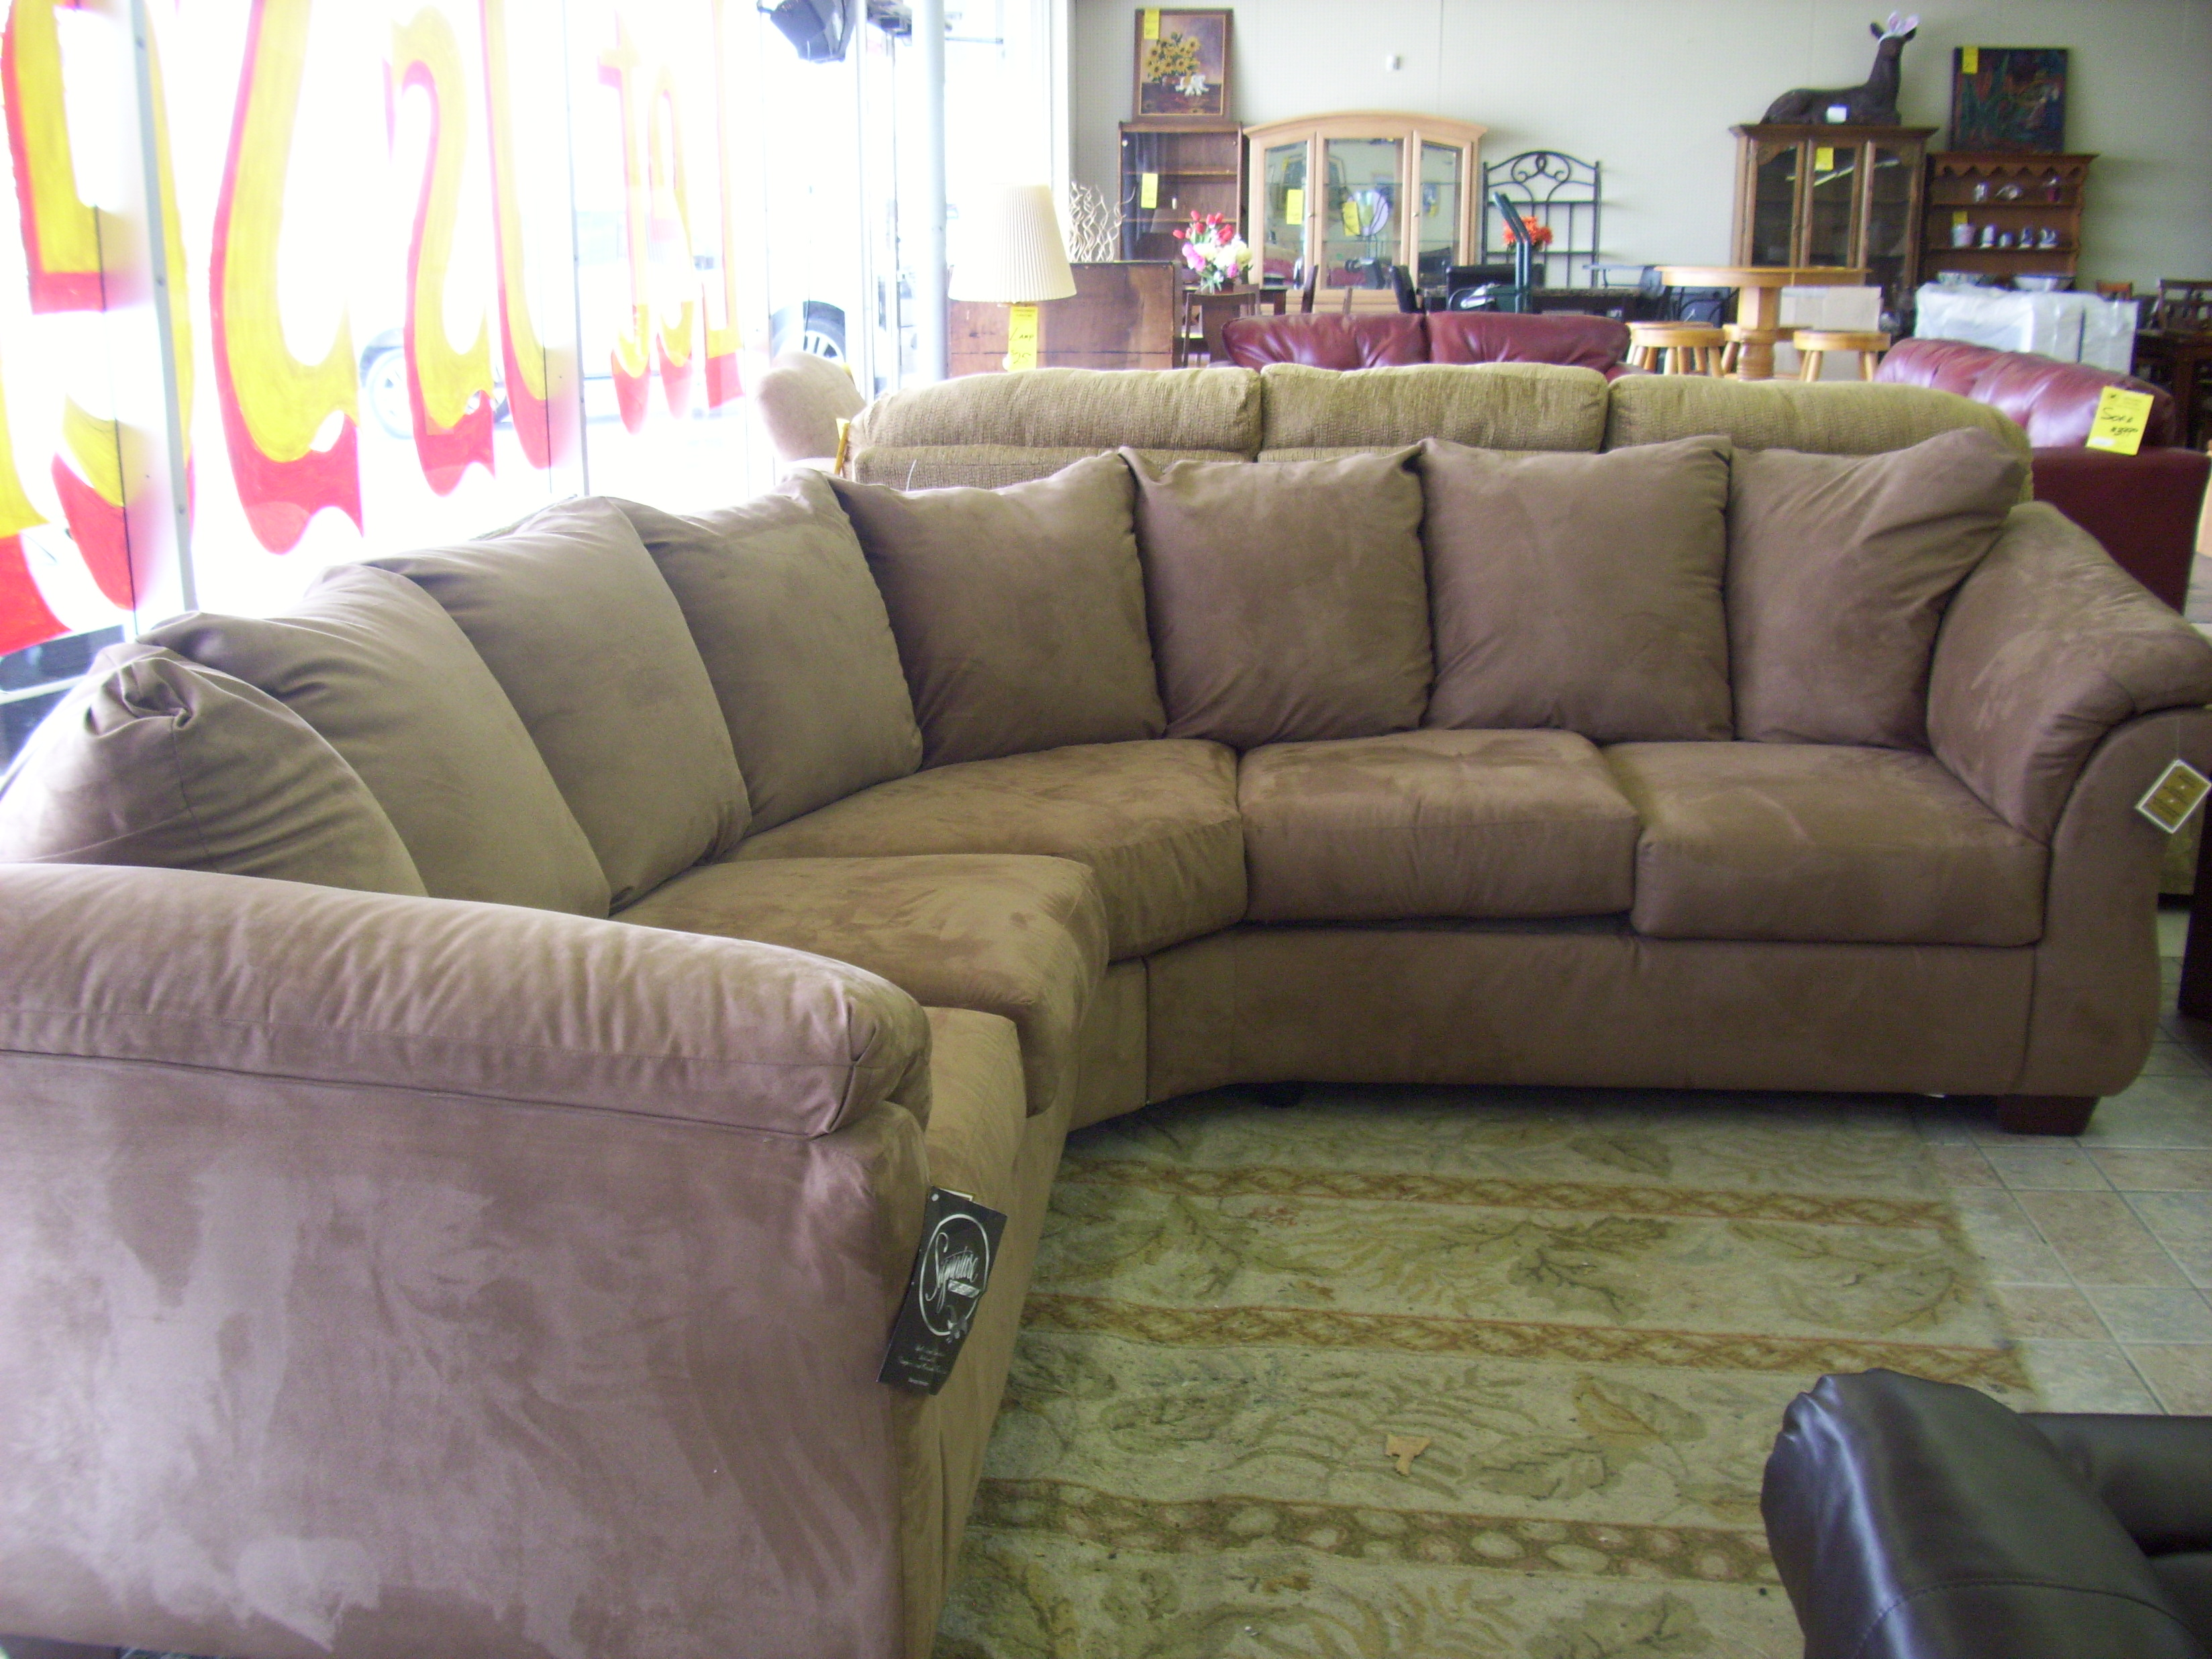 what size rug for living room sectional beach themed chairs u shaped with chaise design | homesfeed